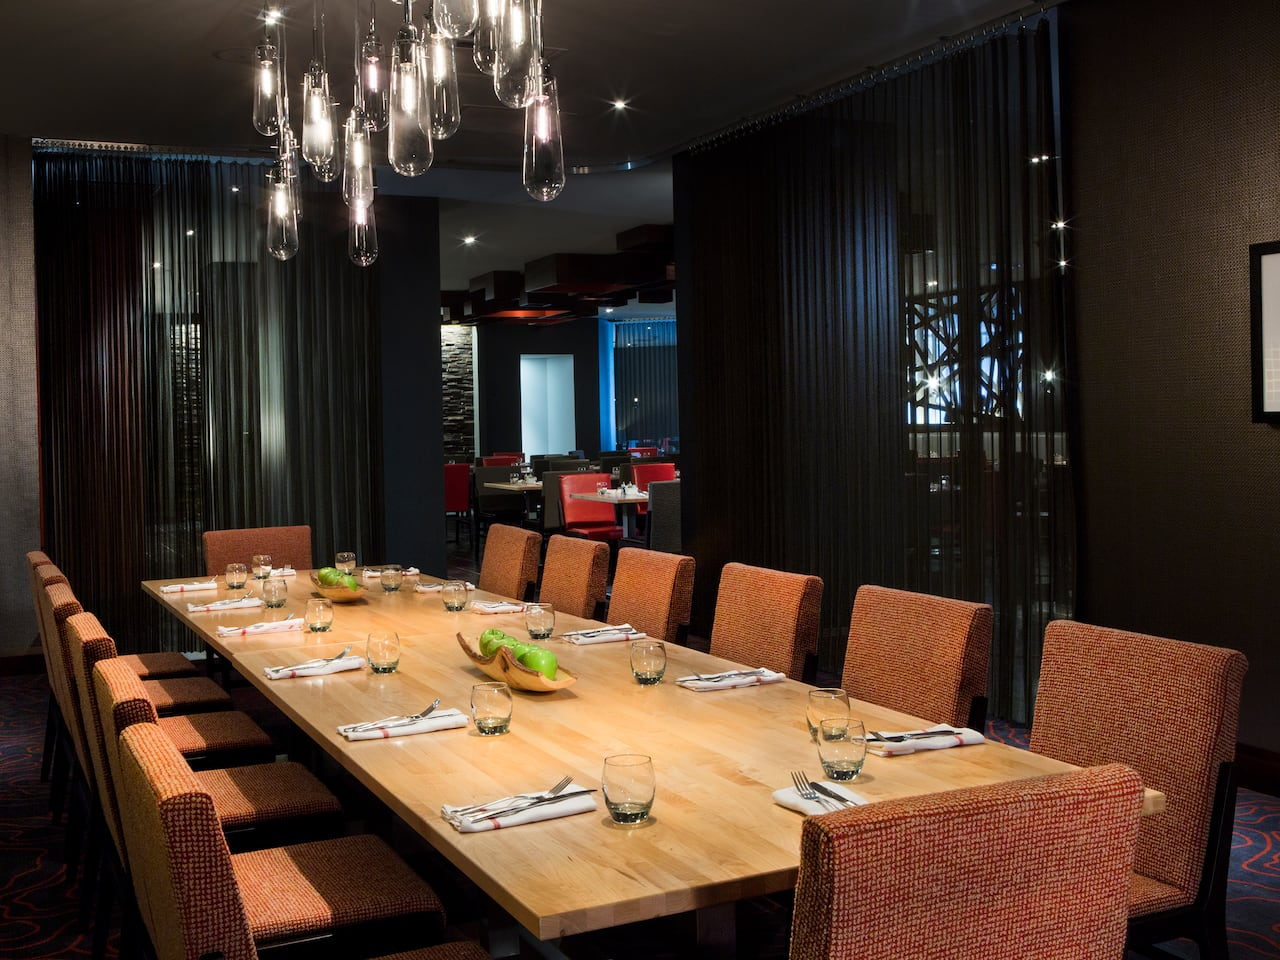 Hyatt Regency Cincinnati Restaurant in Downtown Cincinnati